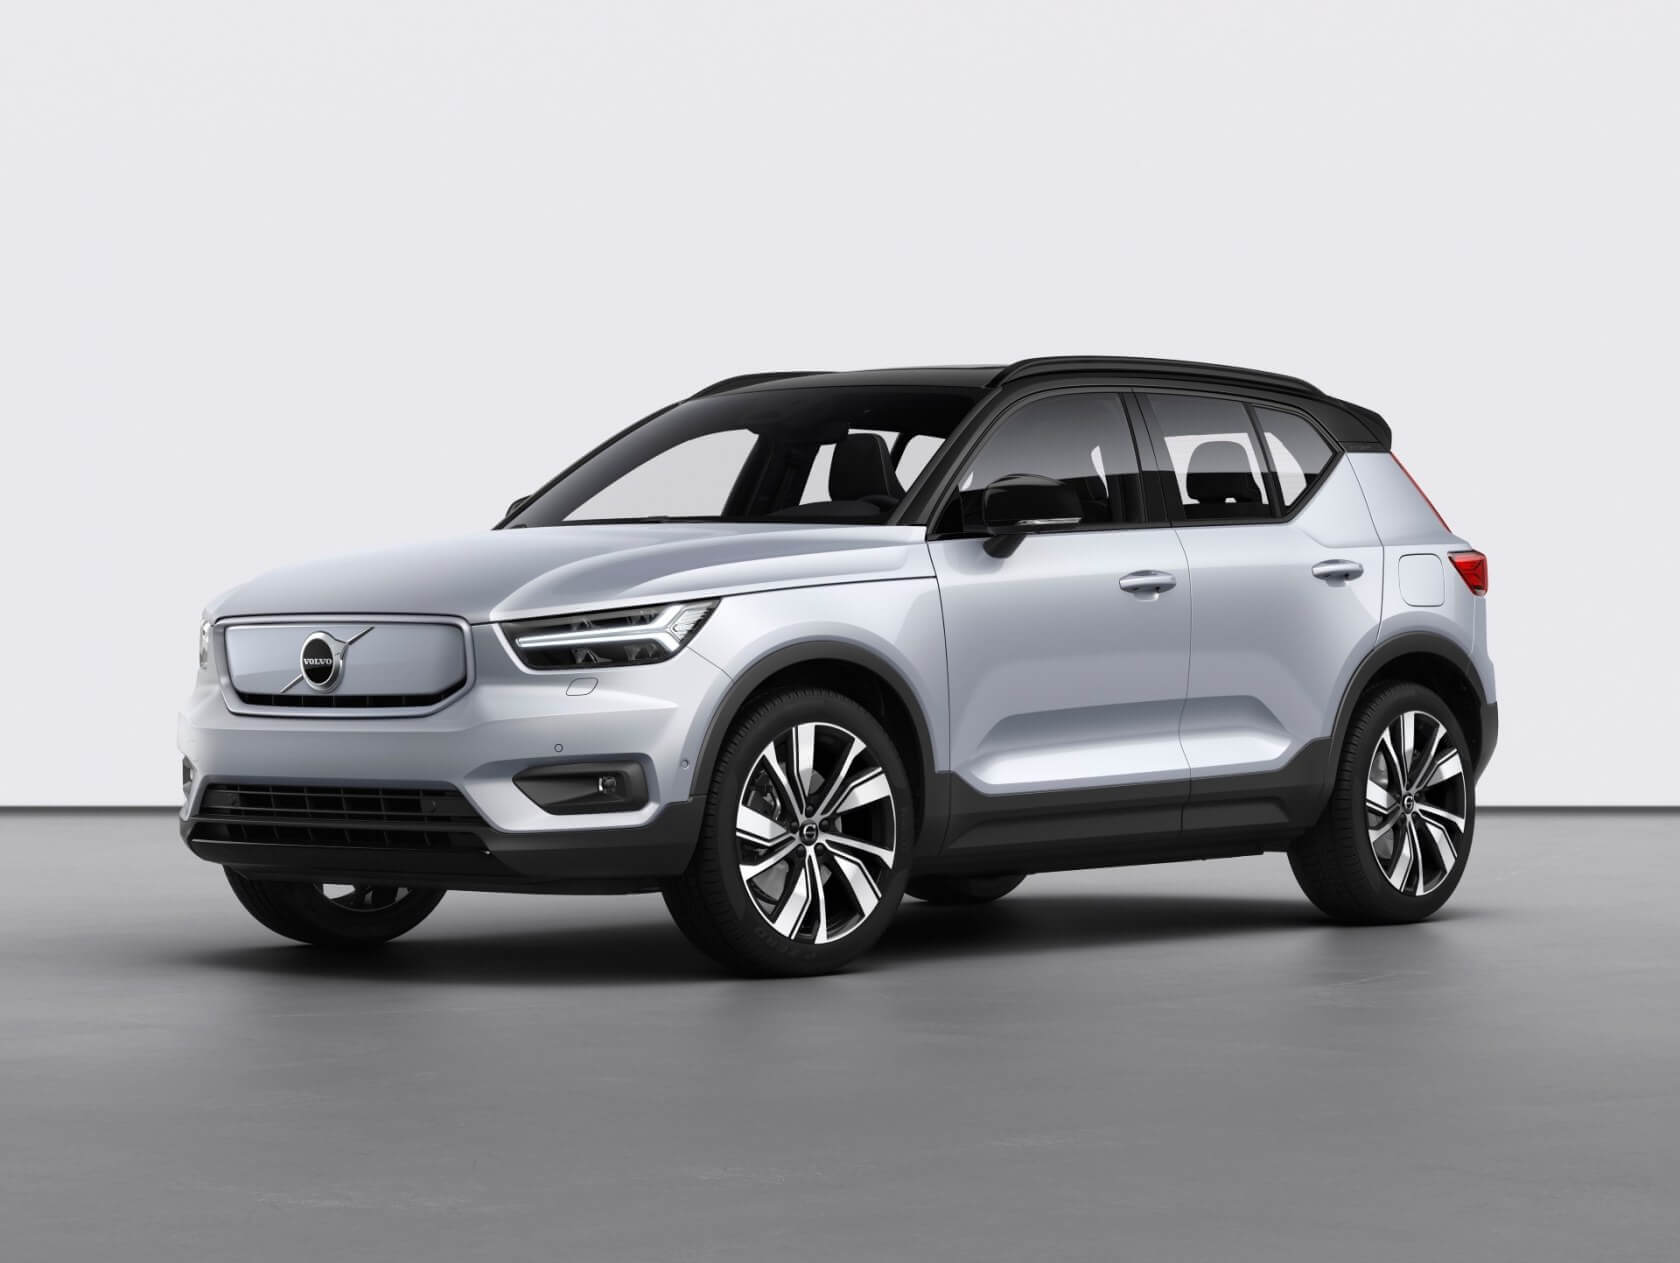 Volvo XC40 Recharge electric crossover debuts: 200 miles, all-wheel drive, constantly updated